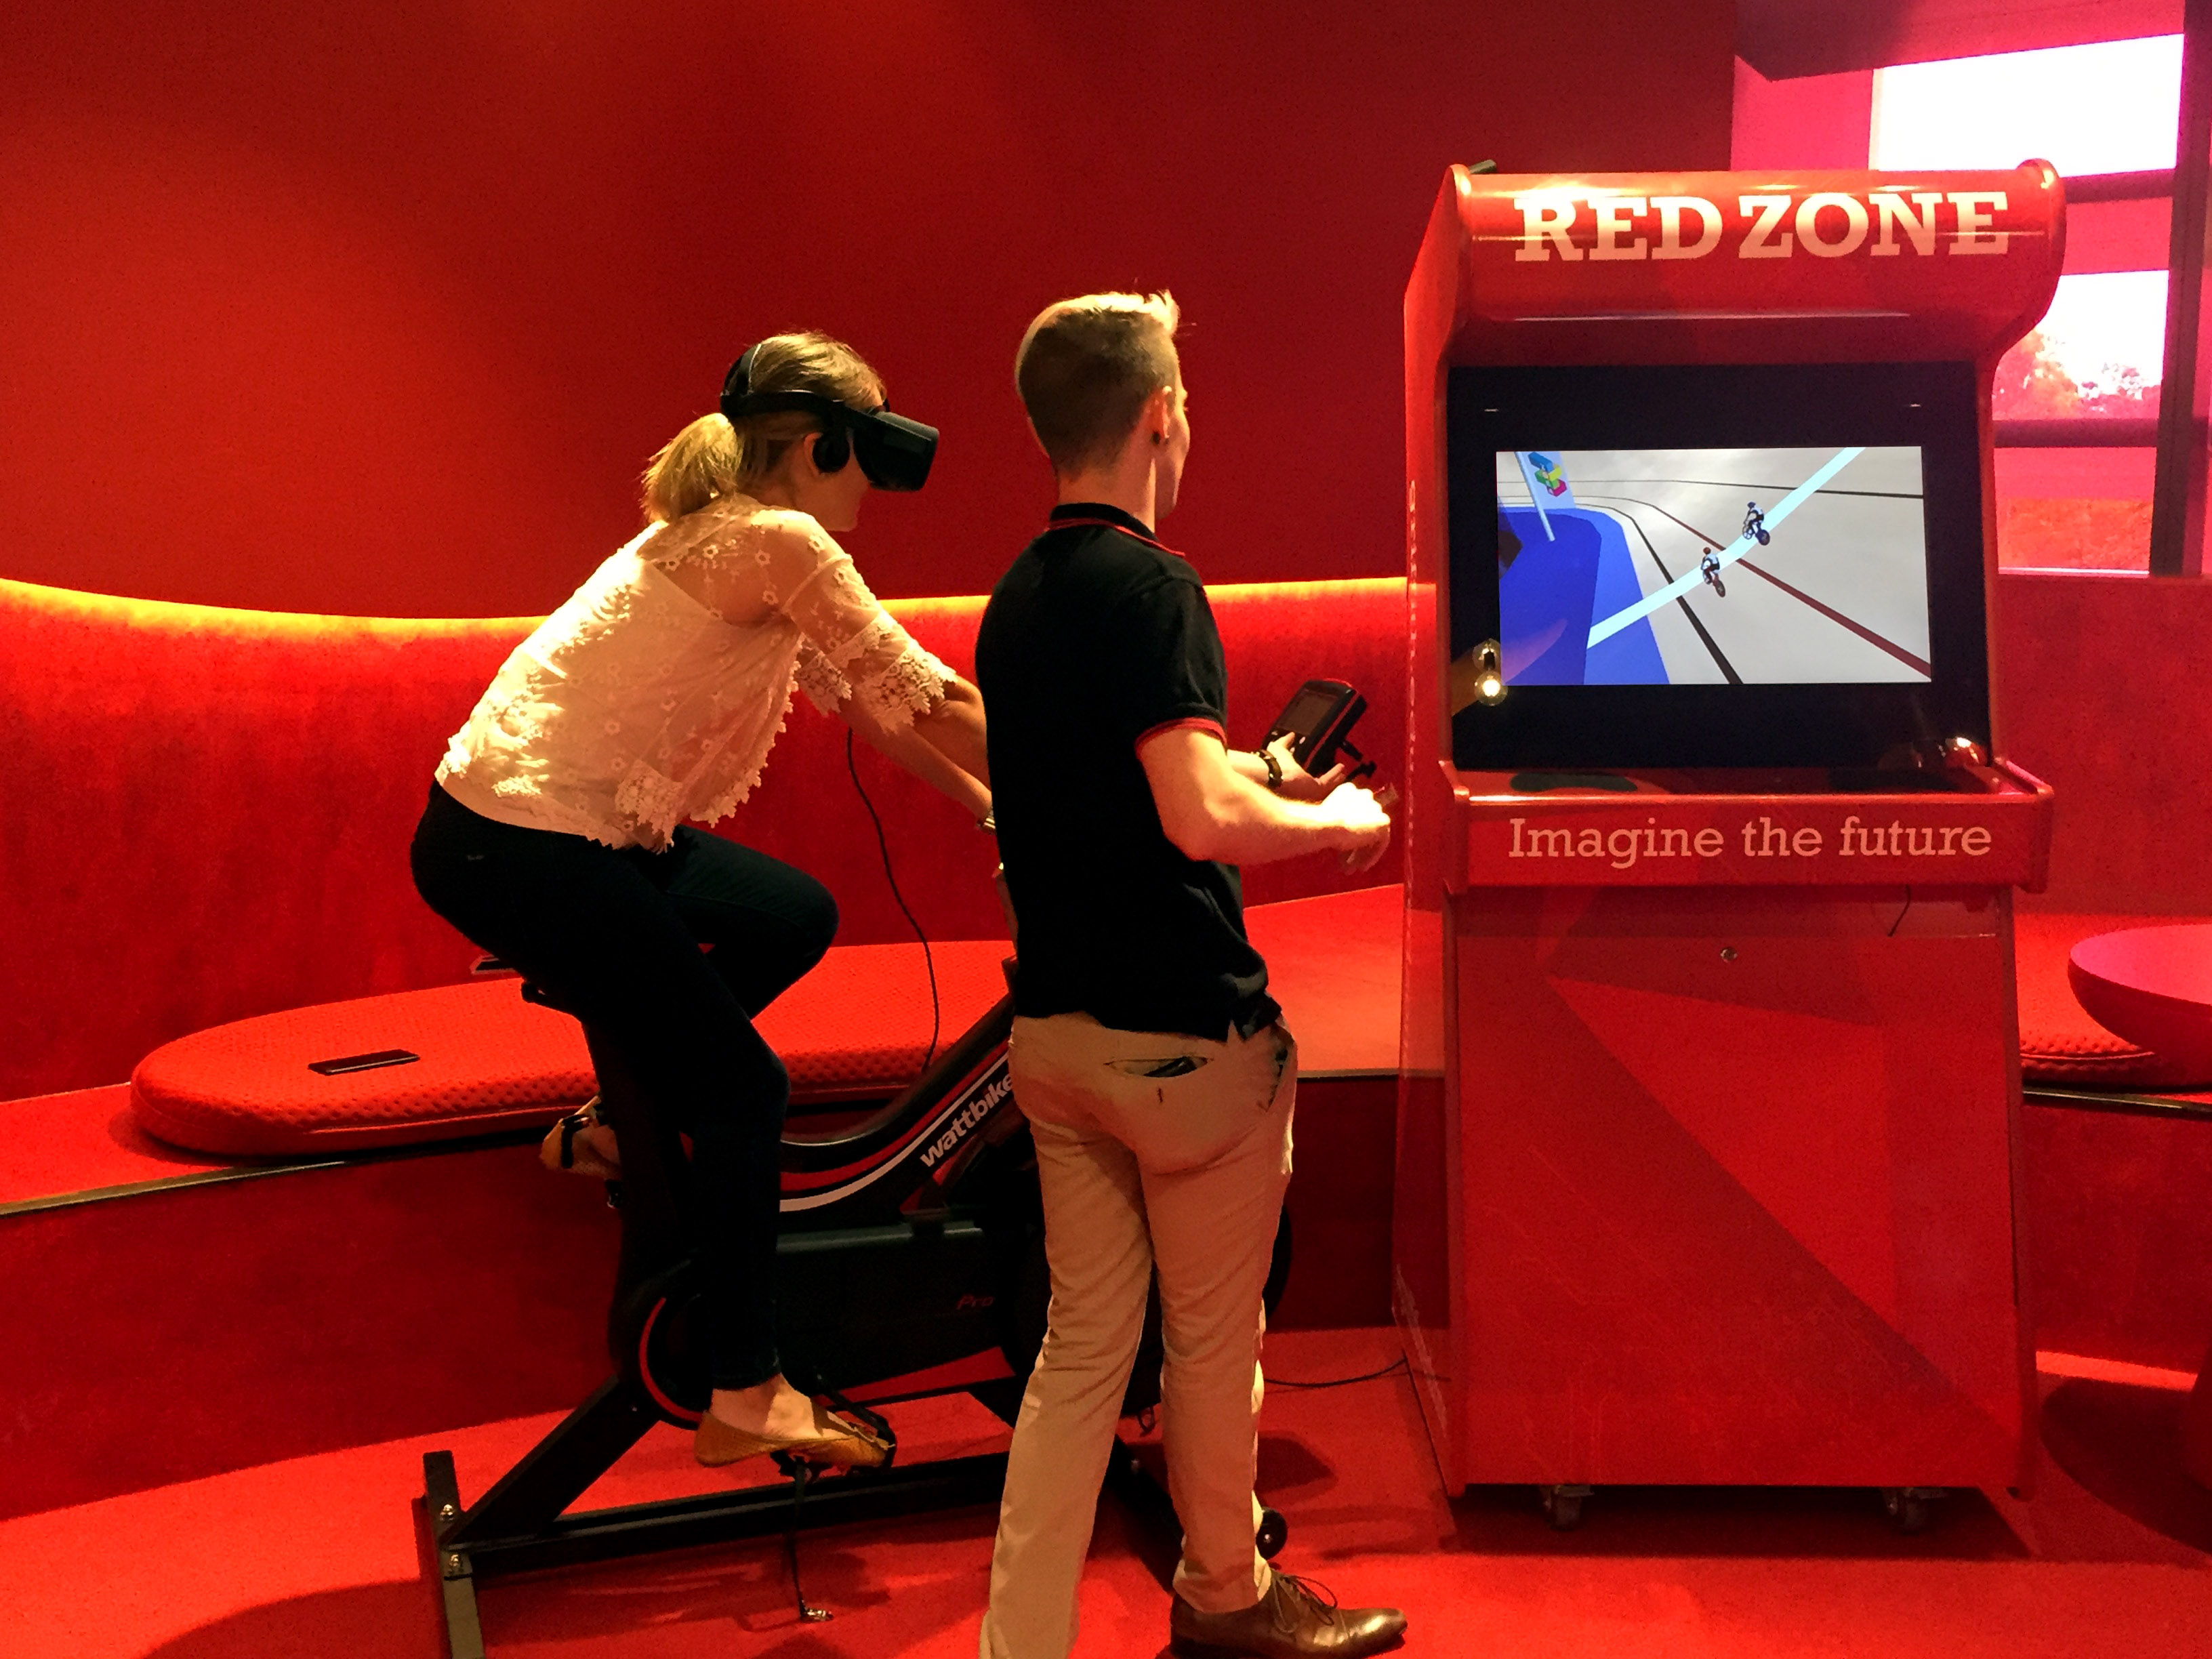 Students test their skill and stamina in the state-of-the-art virtual reality track cycling game at Griffith Red Zone